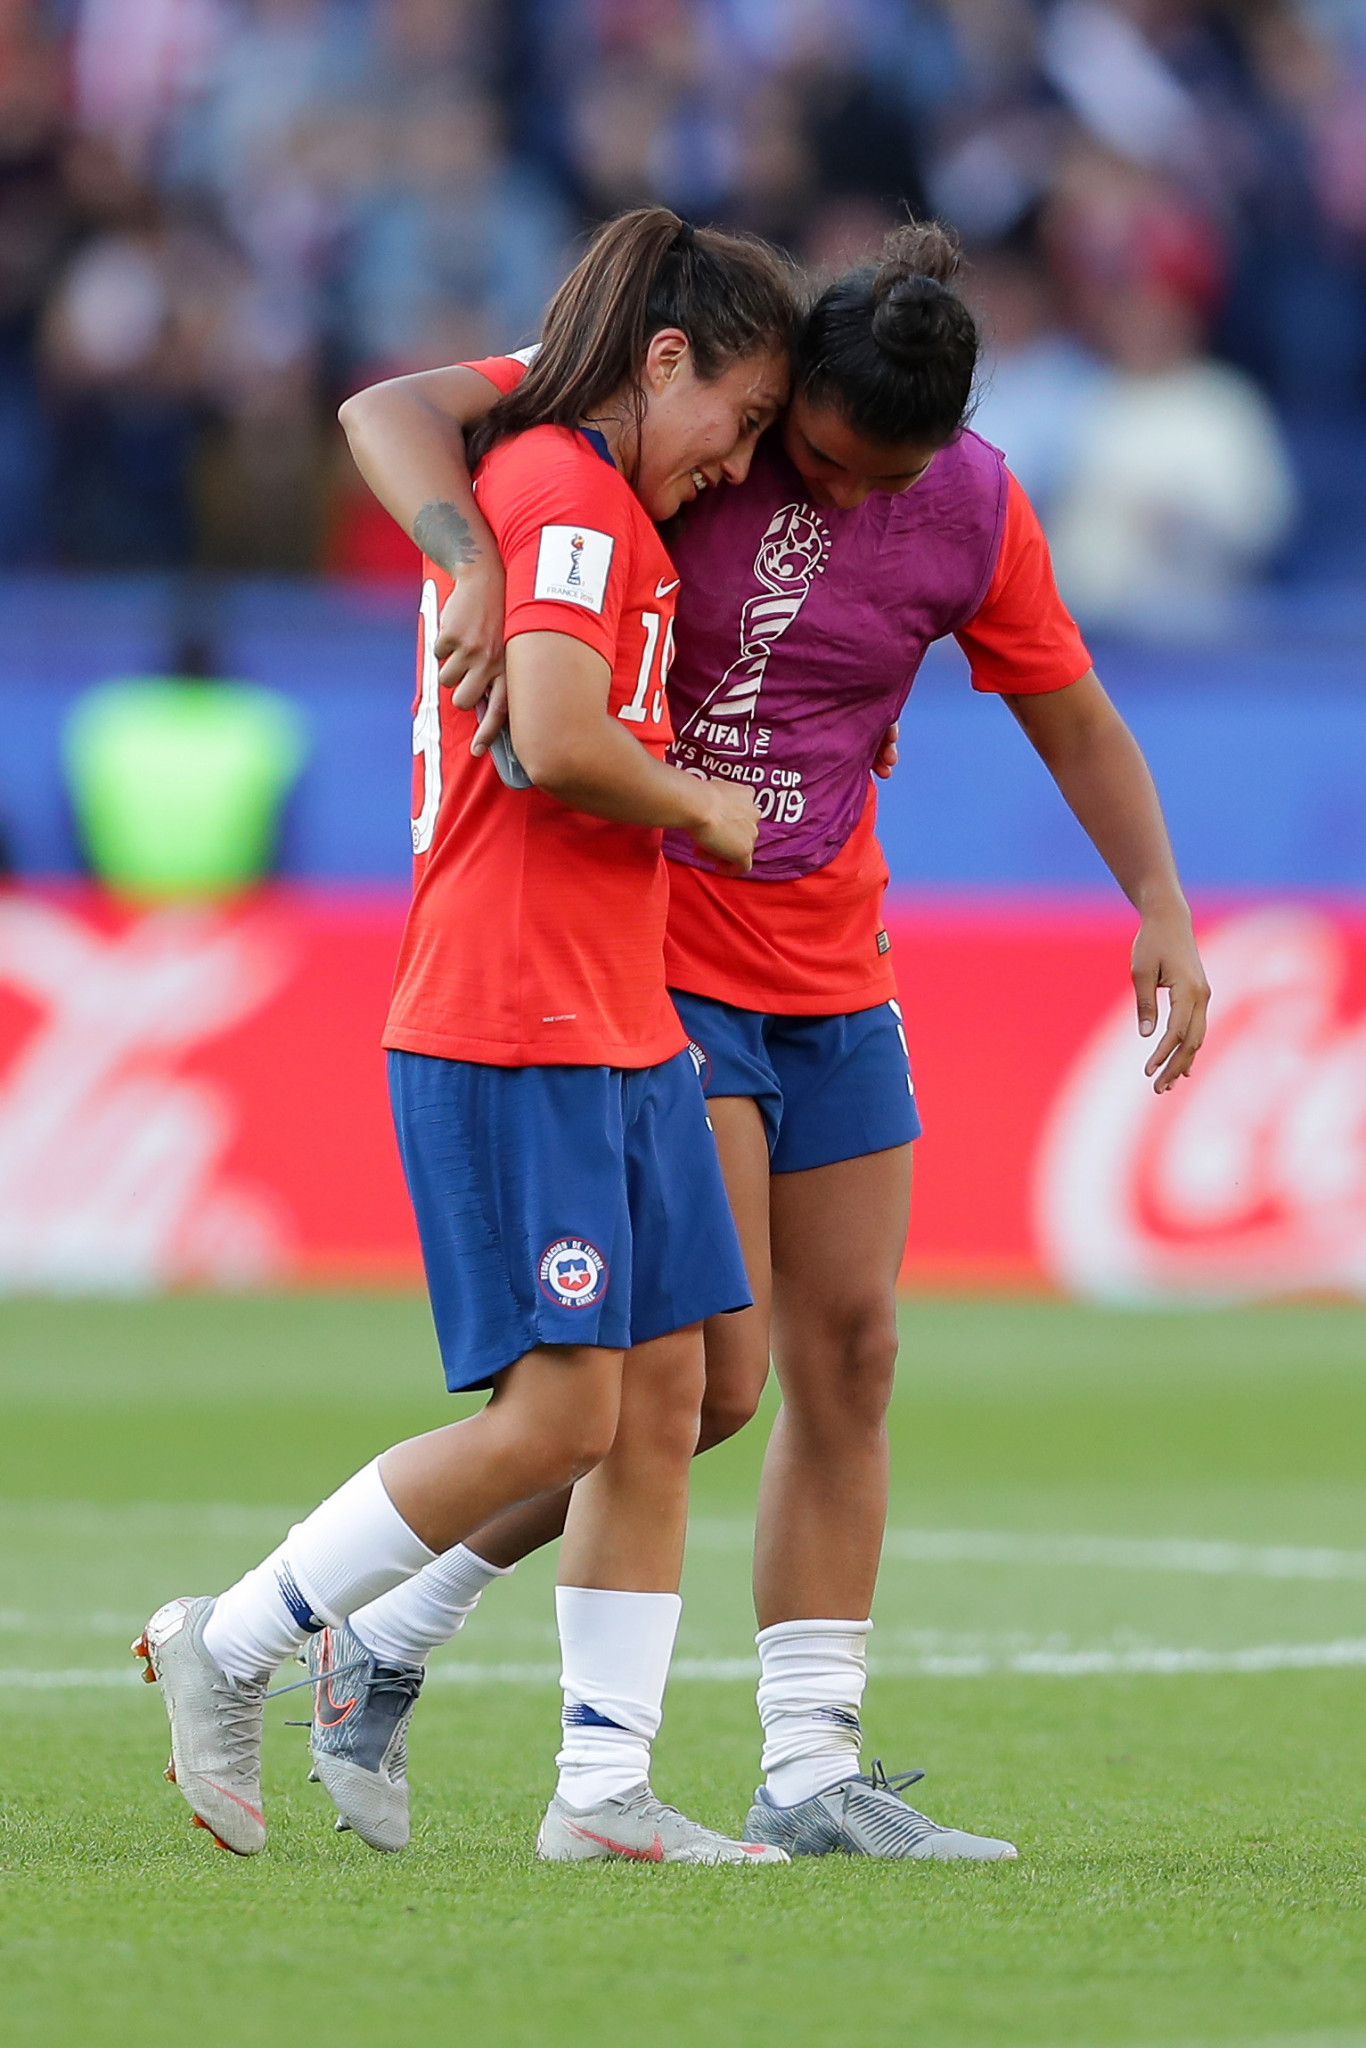 Chile's Yessenia Huenteo is consoled by a team mate ©Getty Images